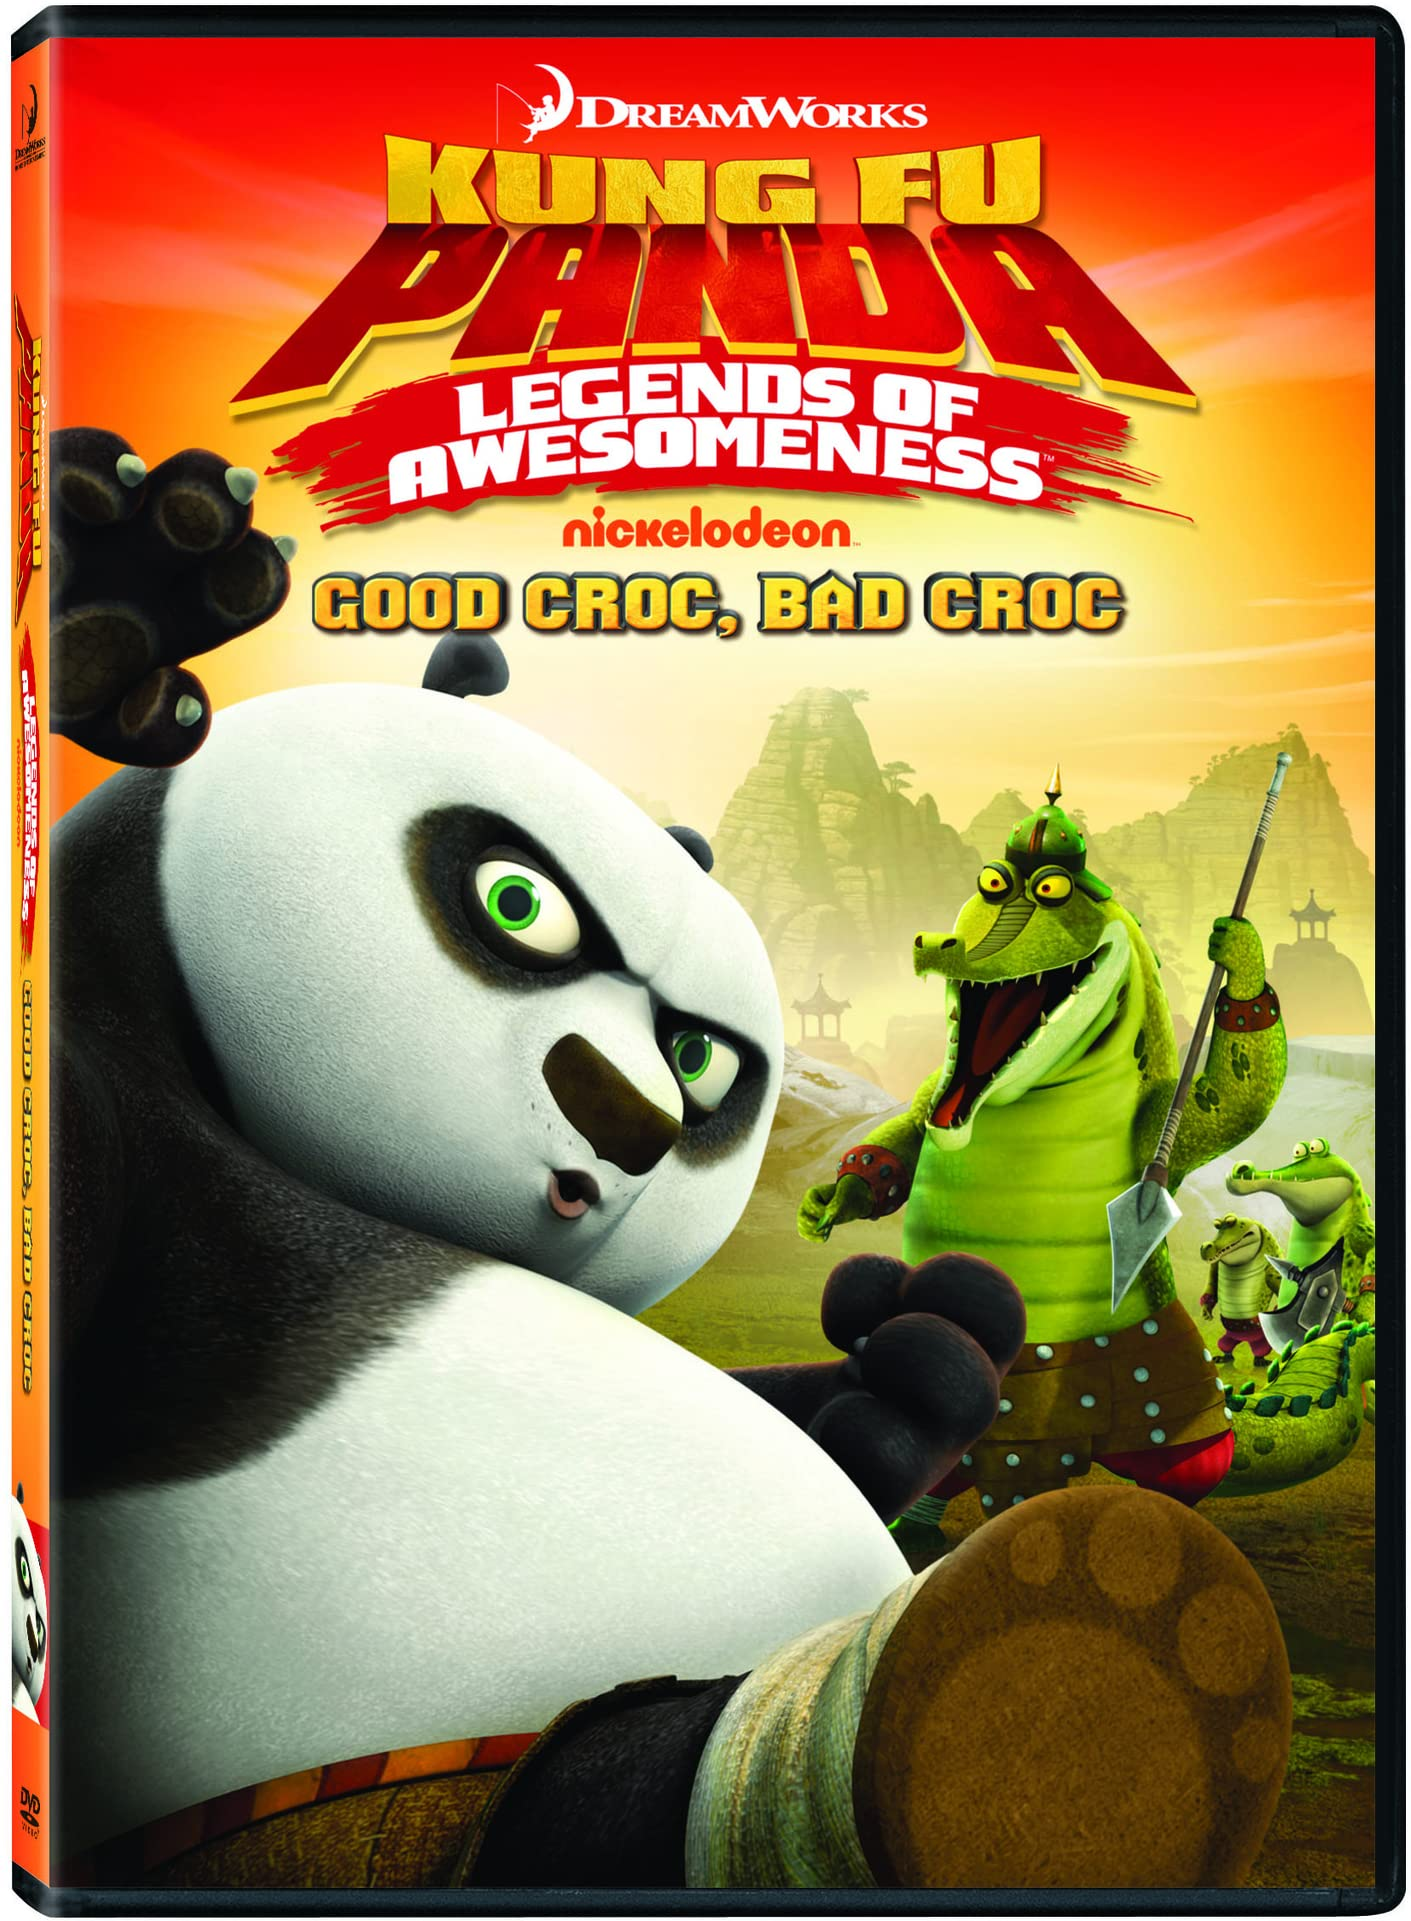 Kung Fu Panda: Legends of Awesomeness full movie free download